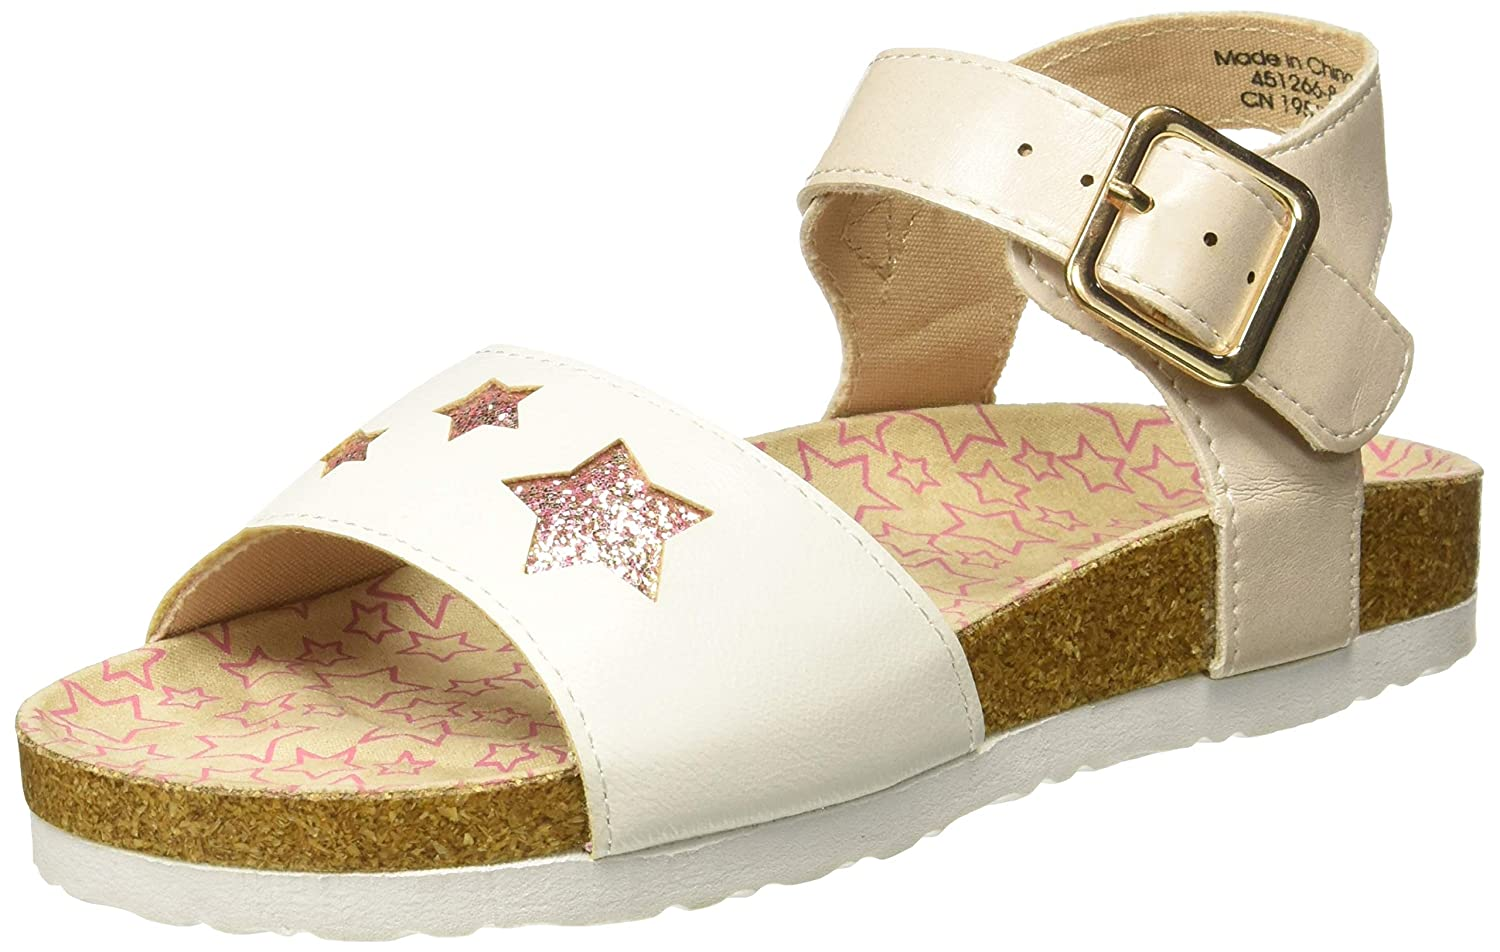 Mothercare Girl's White Outdoor Sandals